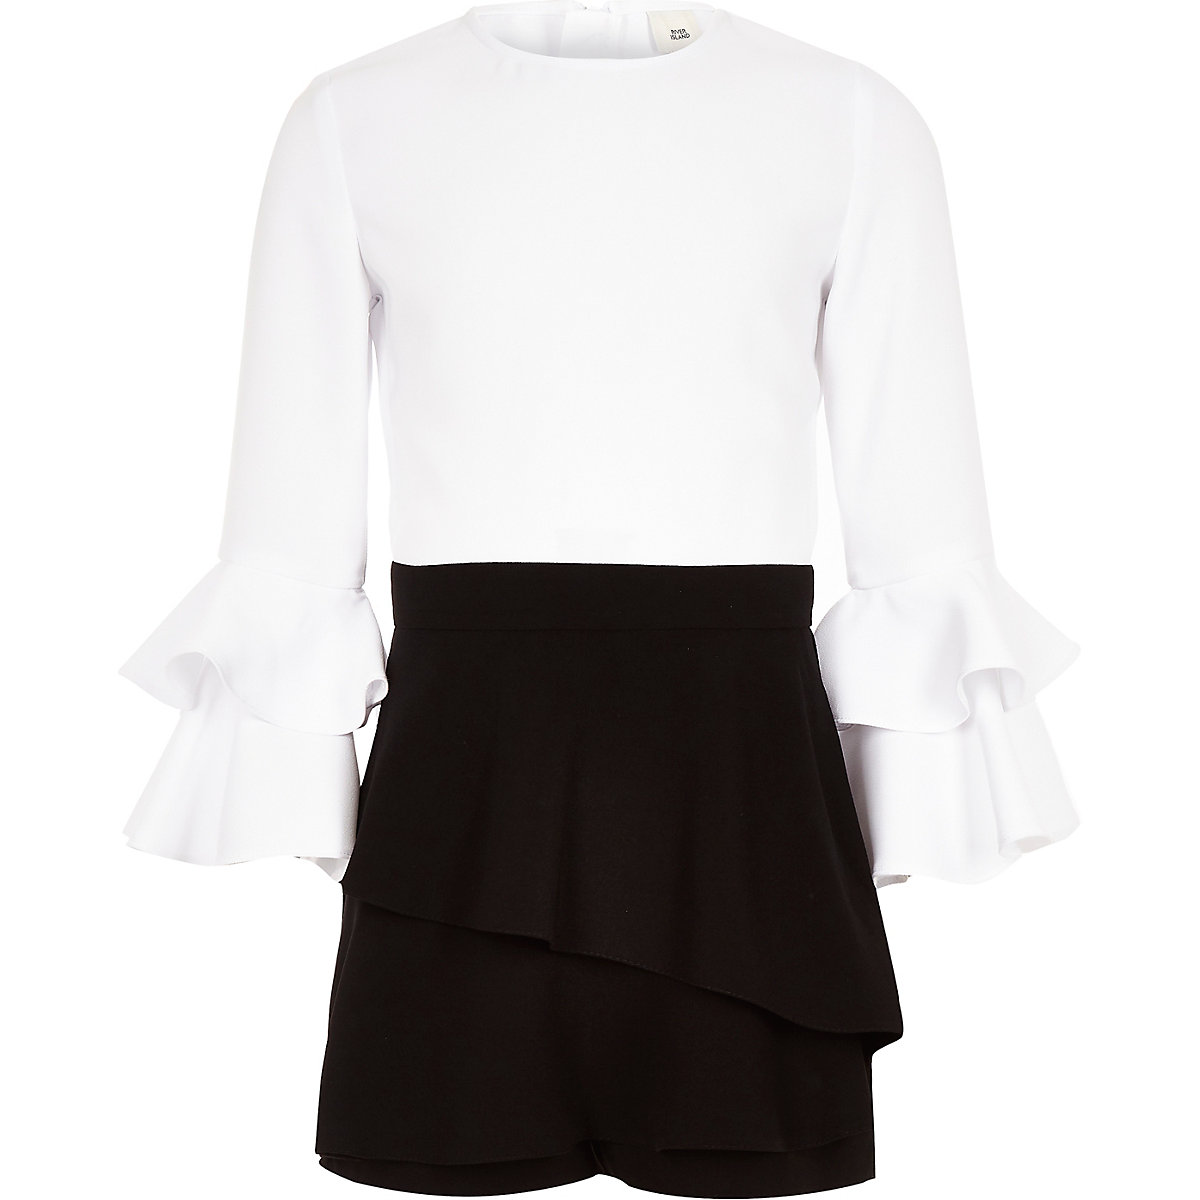 Girls black mono frill skort romper